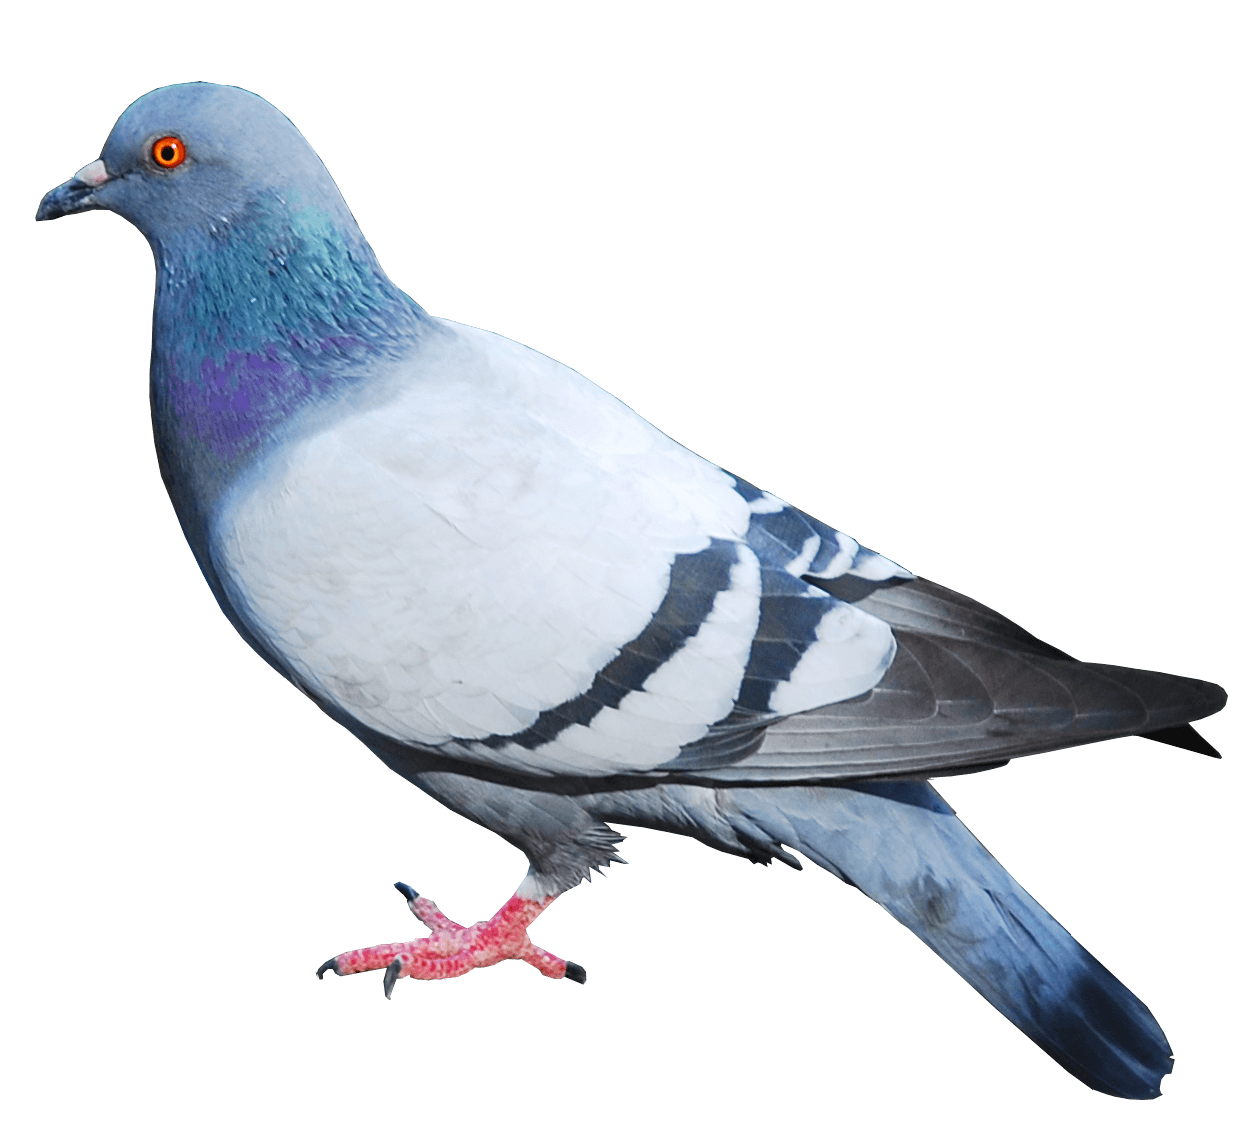 Pigeon Png Image Png Image - Pigeon, Transparent background PNG HD thumbnail